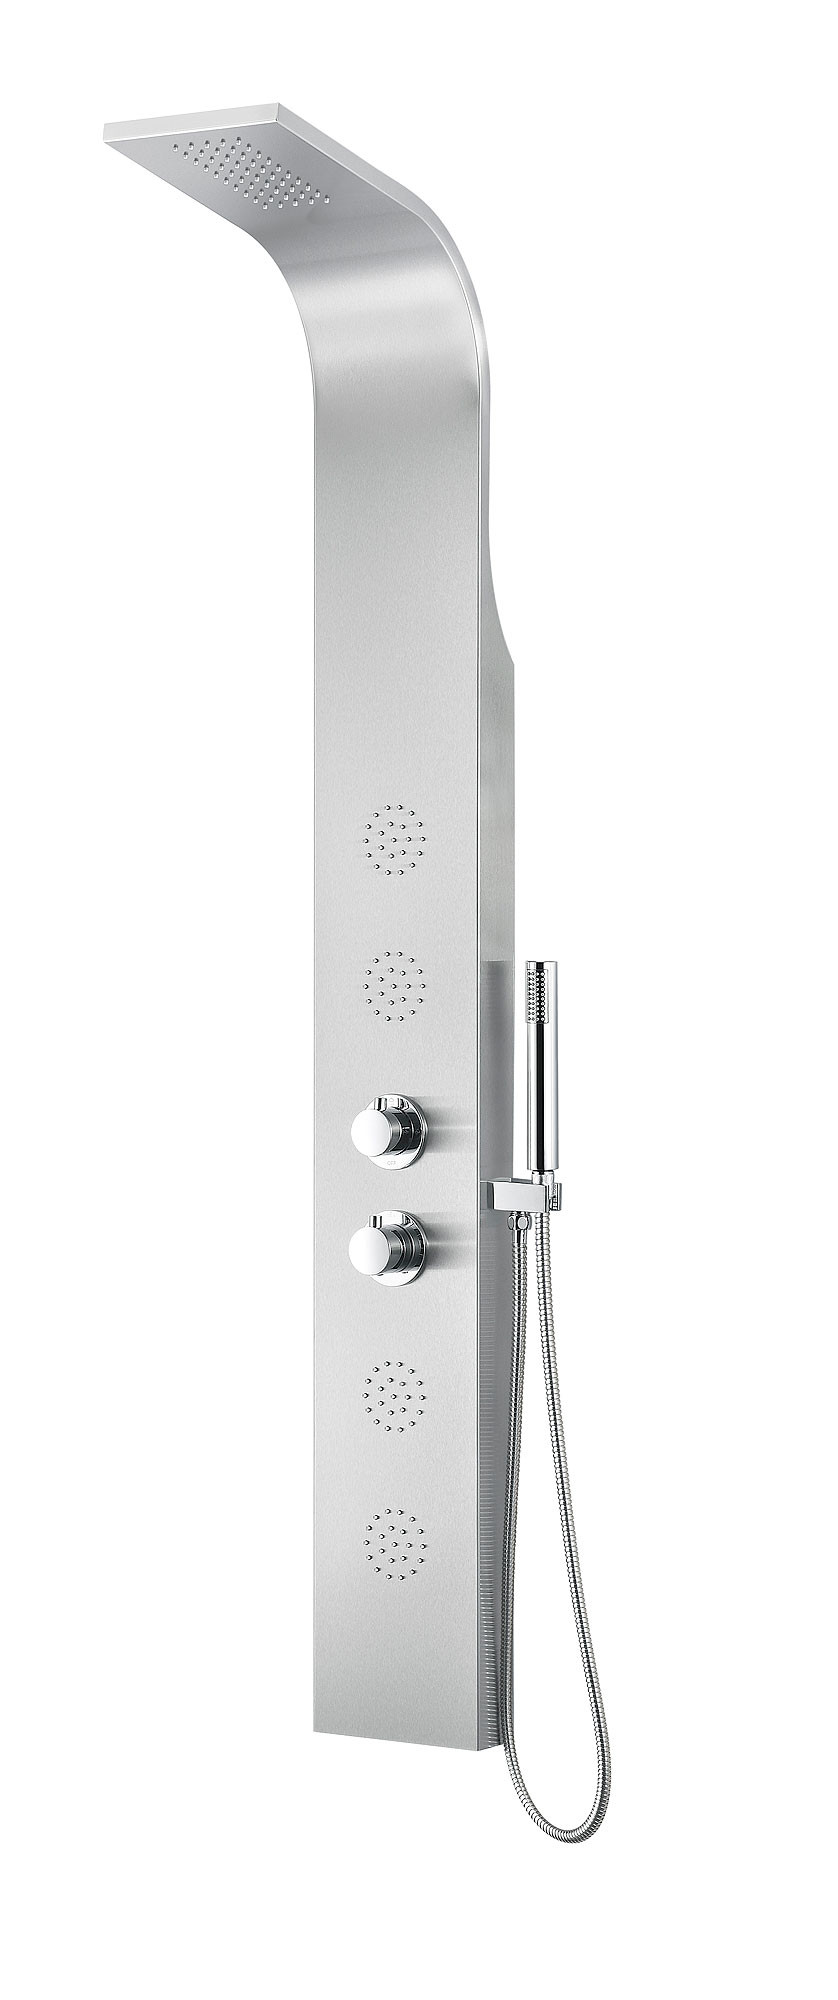 ANZZI SP-AZ040 Prairie Full Body Shower Panel In Brushed Sainless Steel